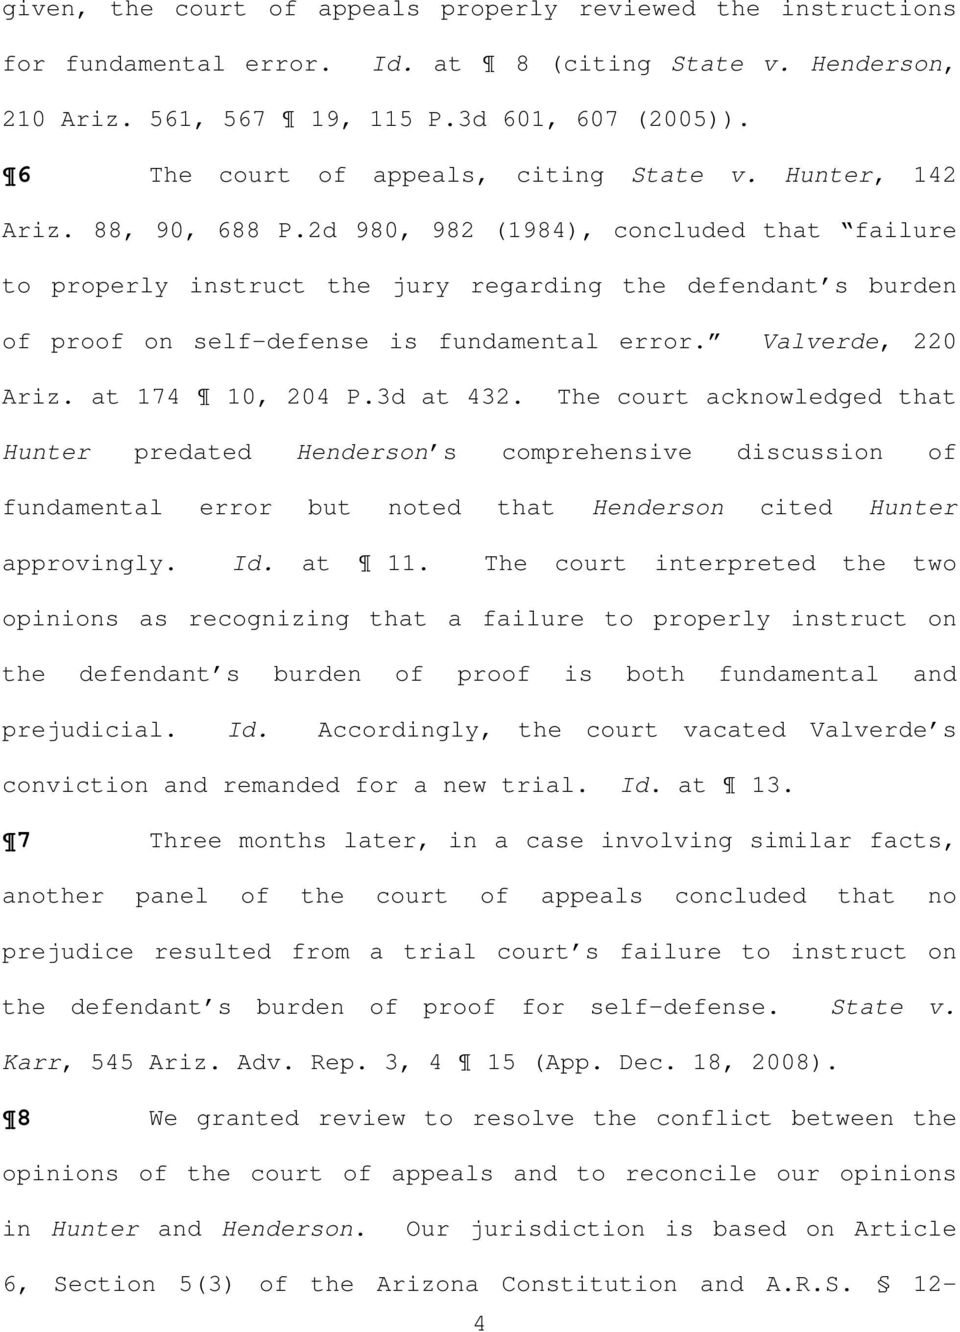 2d 980, 982 (1984), concluded that failure to properly instruct the jury regarding the defendant s burden of proof on self-defense is fundamental error. Valverde, 220 Ariz. at 174 10, 204 P.3d at 432.